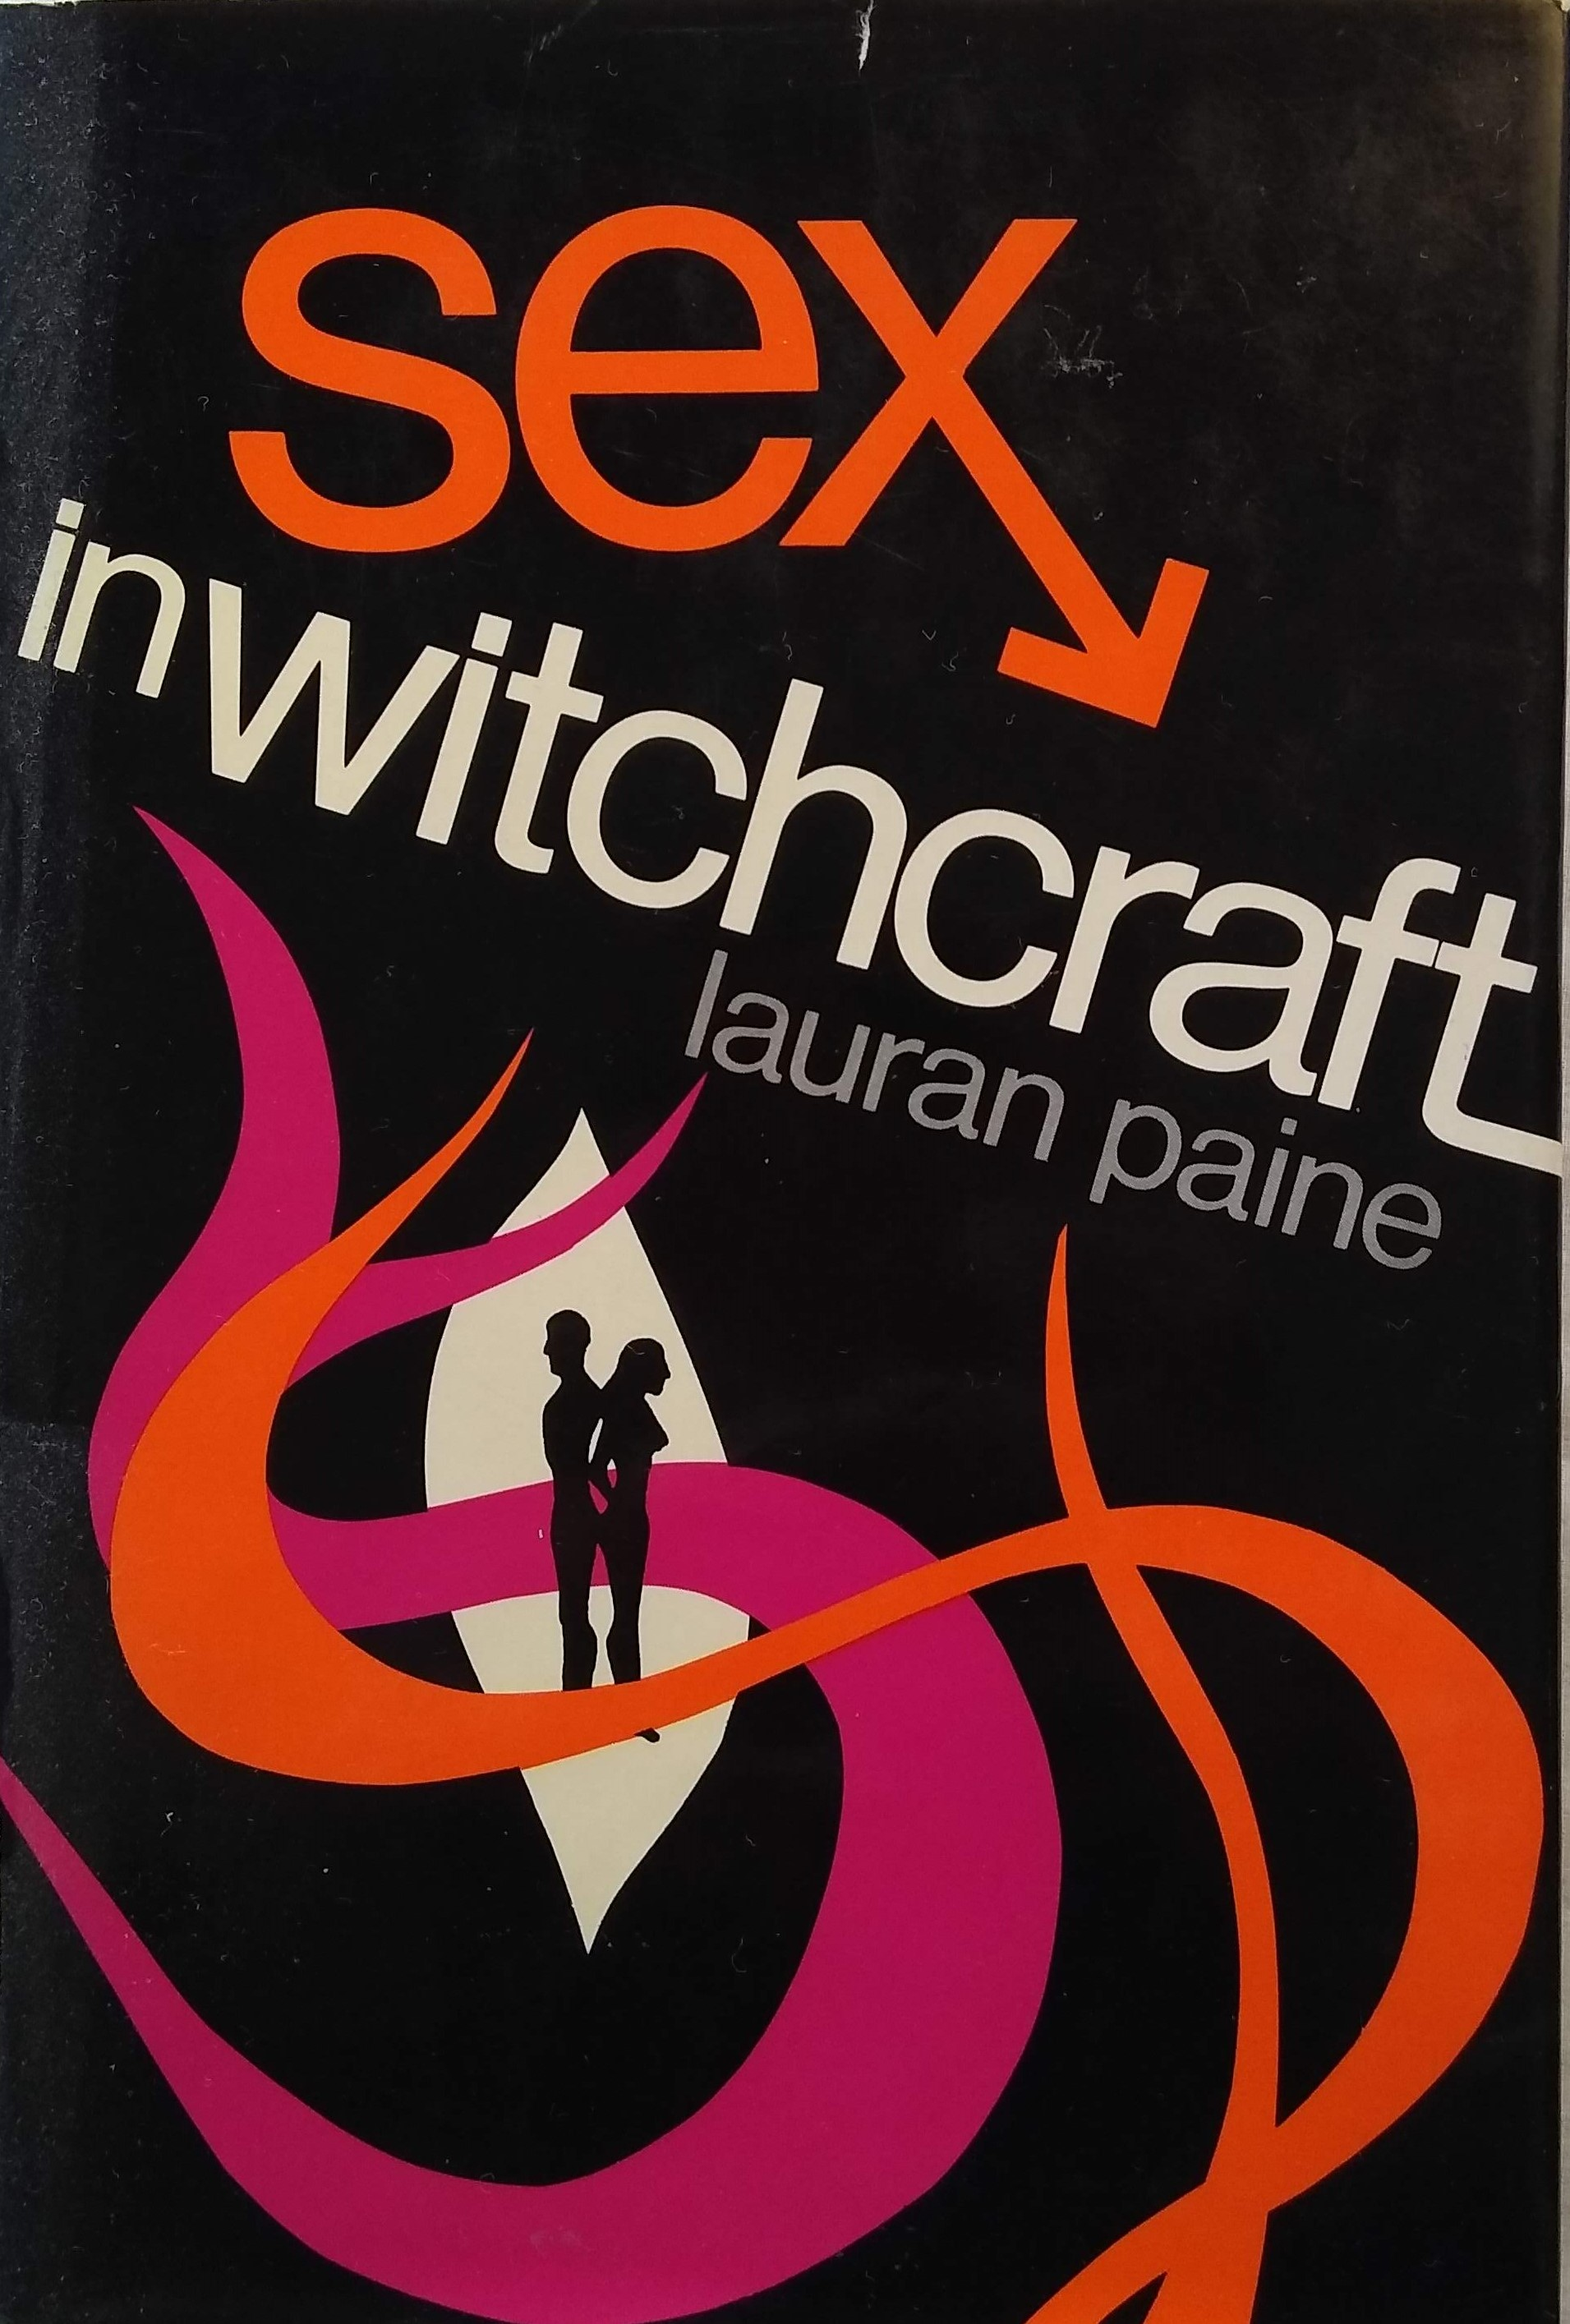 Sex in witchcraft